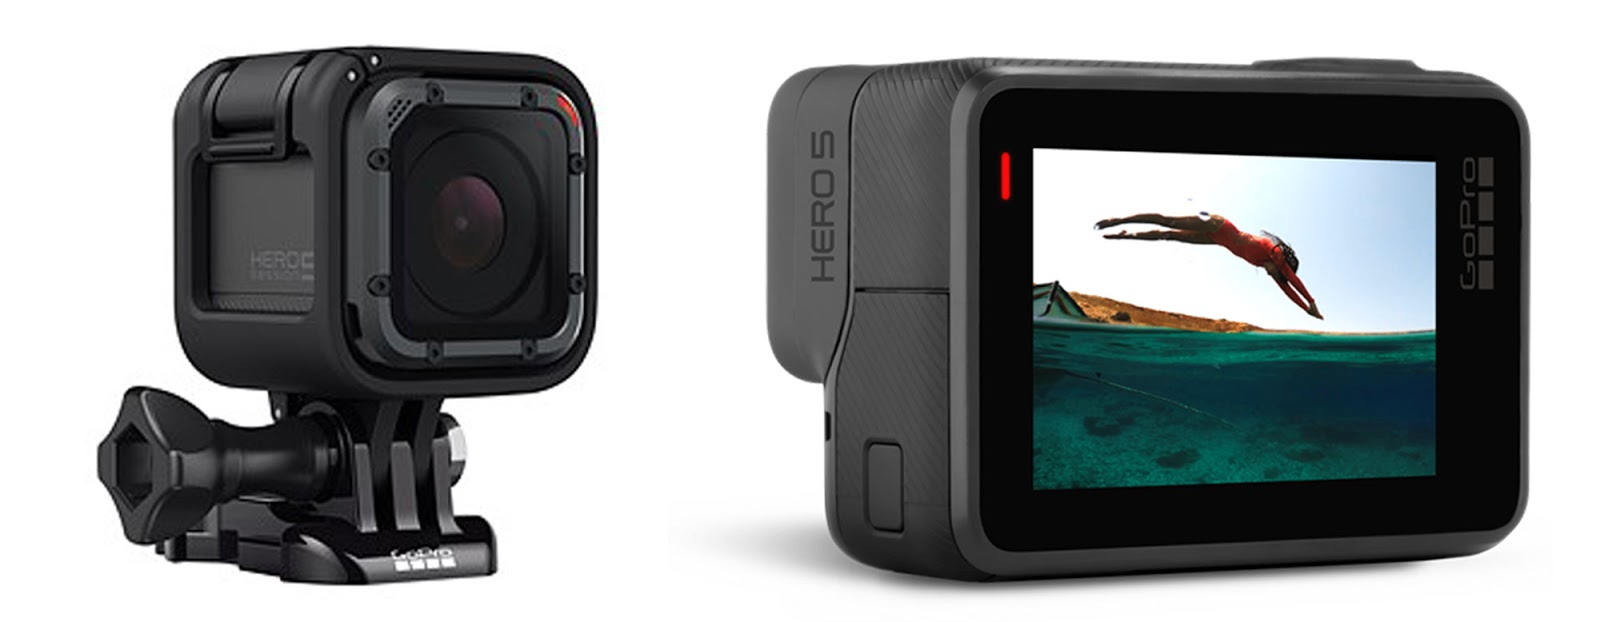 GoPro Hero 5 Session и Hero 5 Black